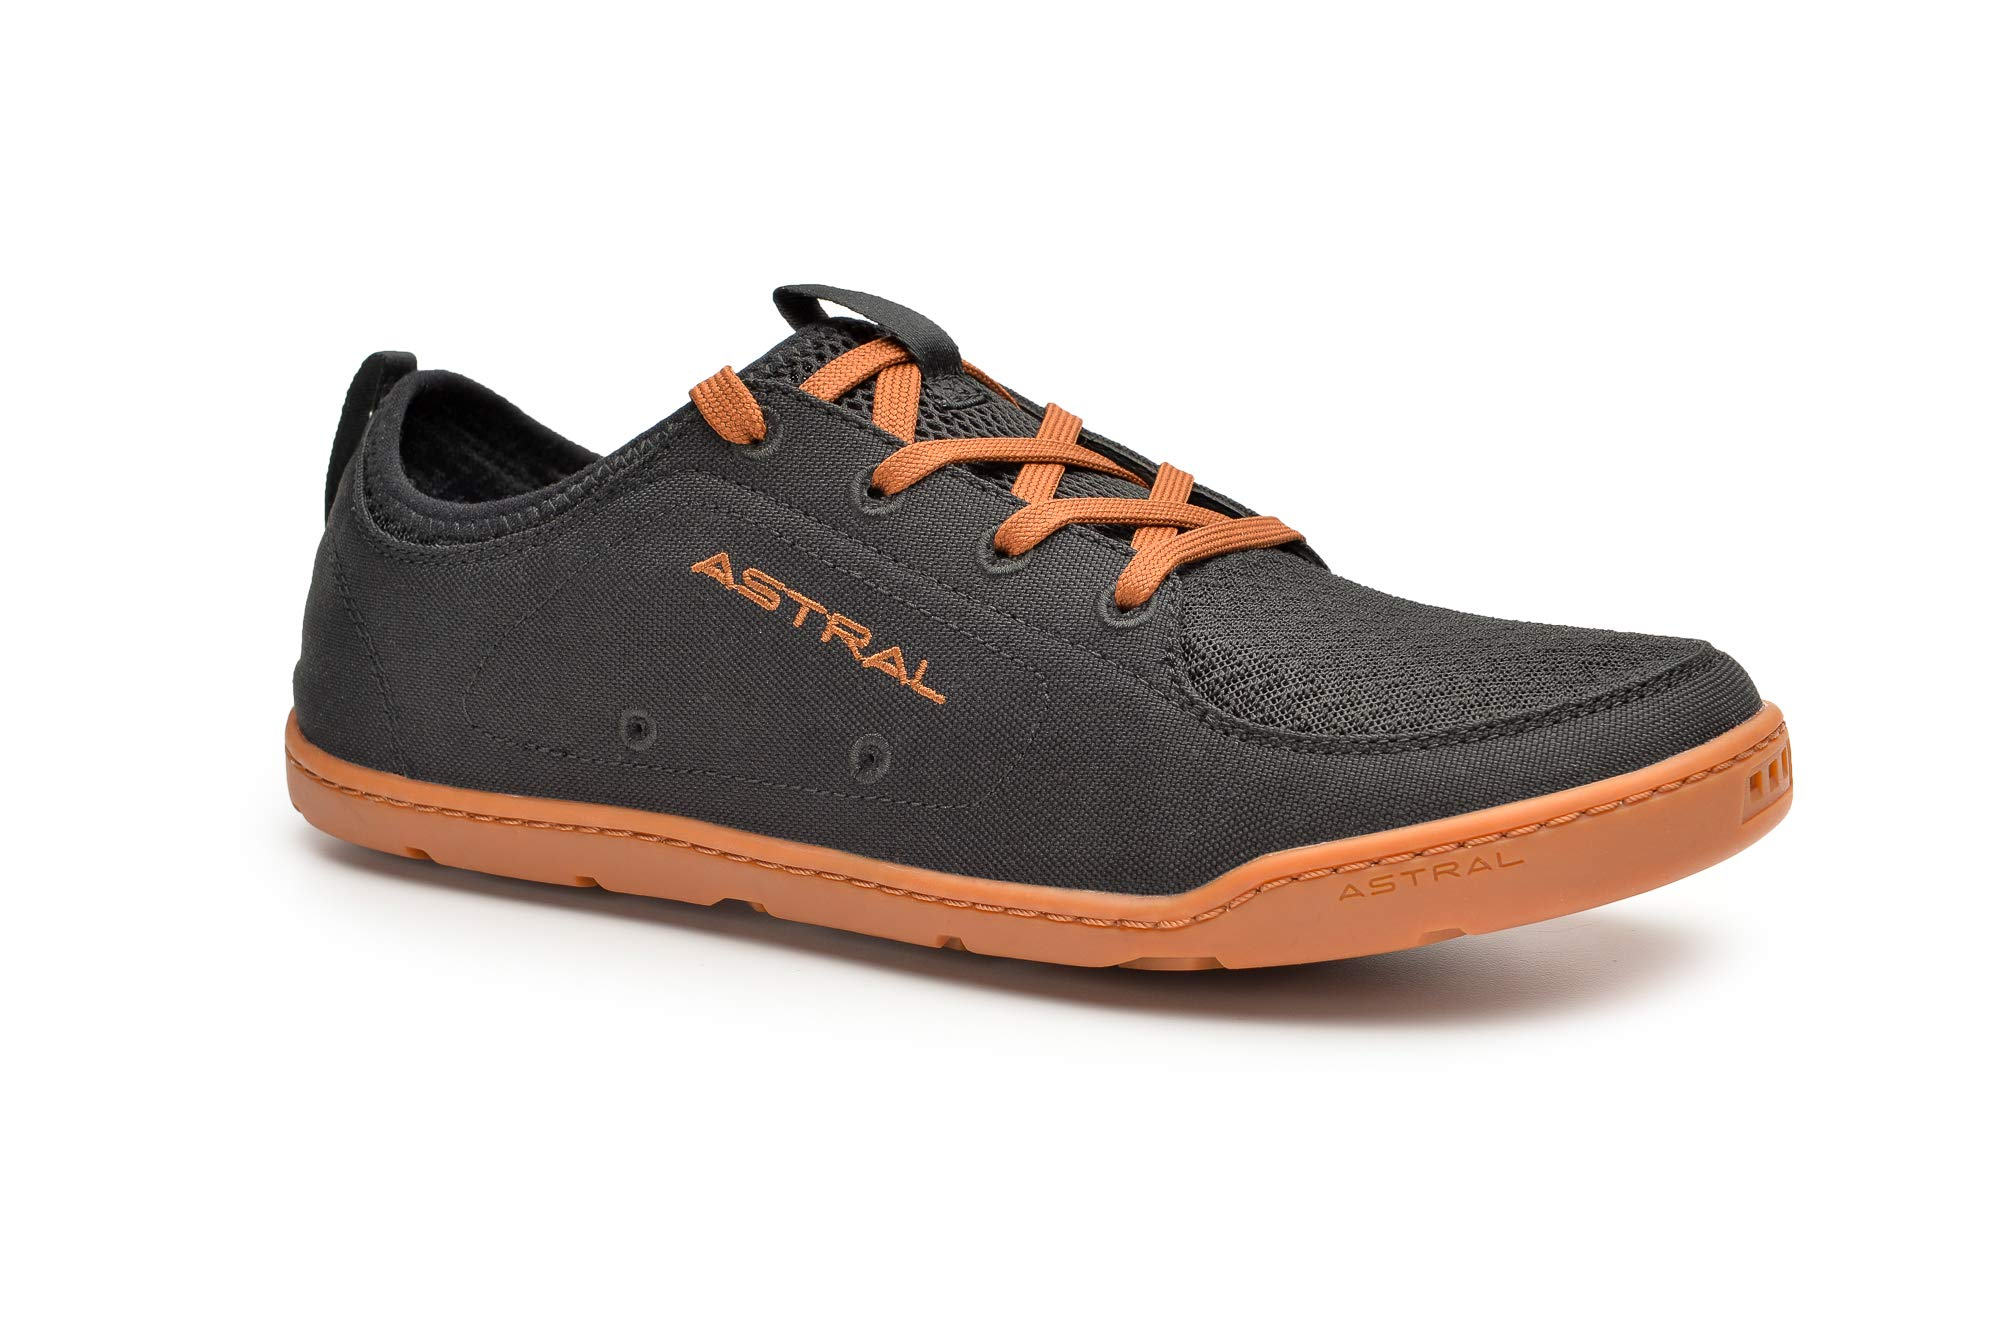 Astral Men's Loyak Everyday Outdoor Minimalist Sneakers, Lightweight and Flexible, Made for Water, Casual, Travel, and Boat, Black/Brown, 8 M US